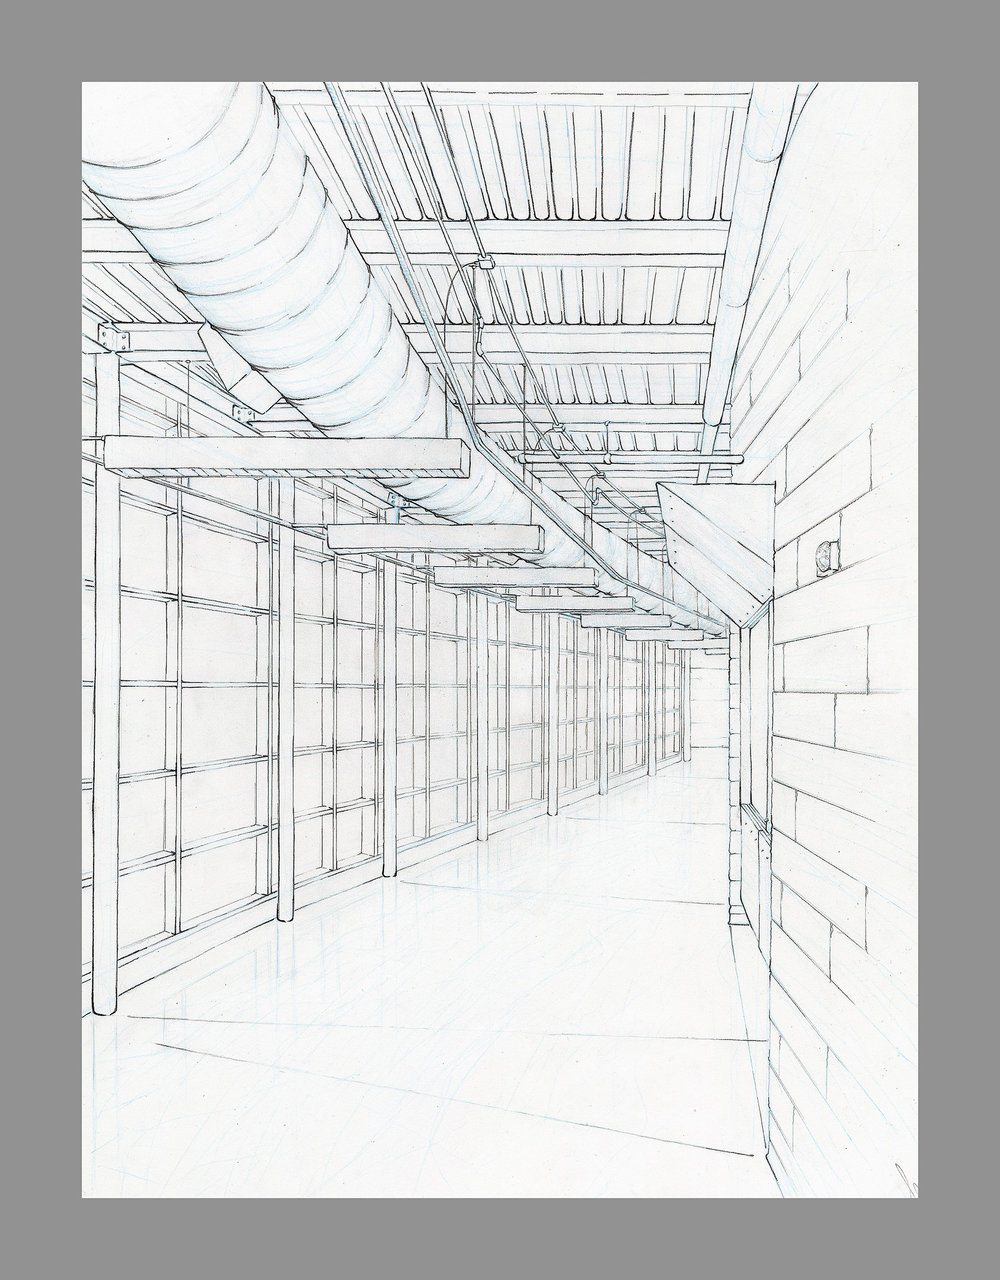 Direct Observational Two-Point Perspective Graphite and Blue Drafting Pencil 2015